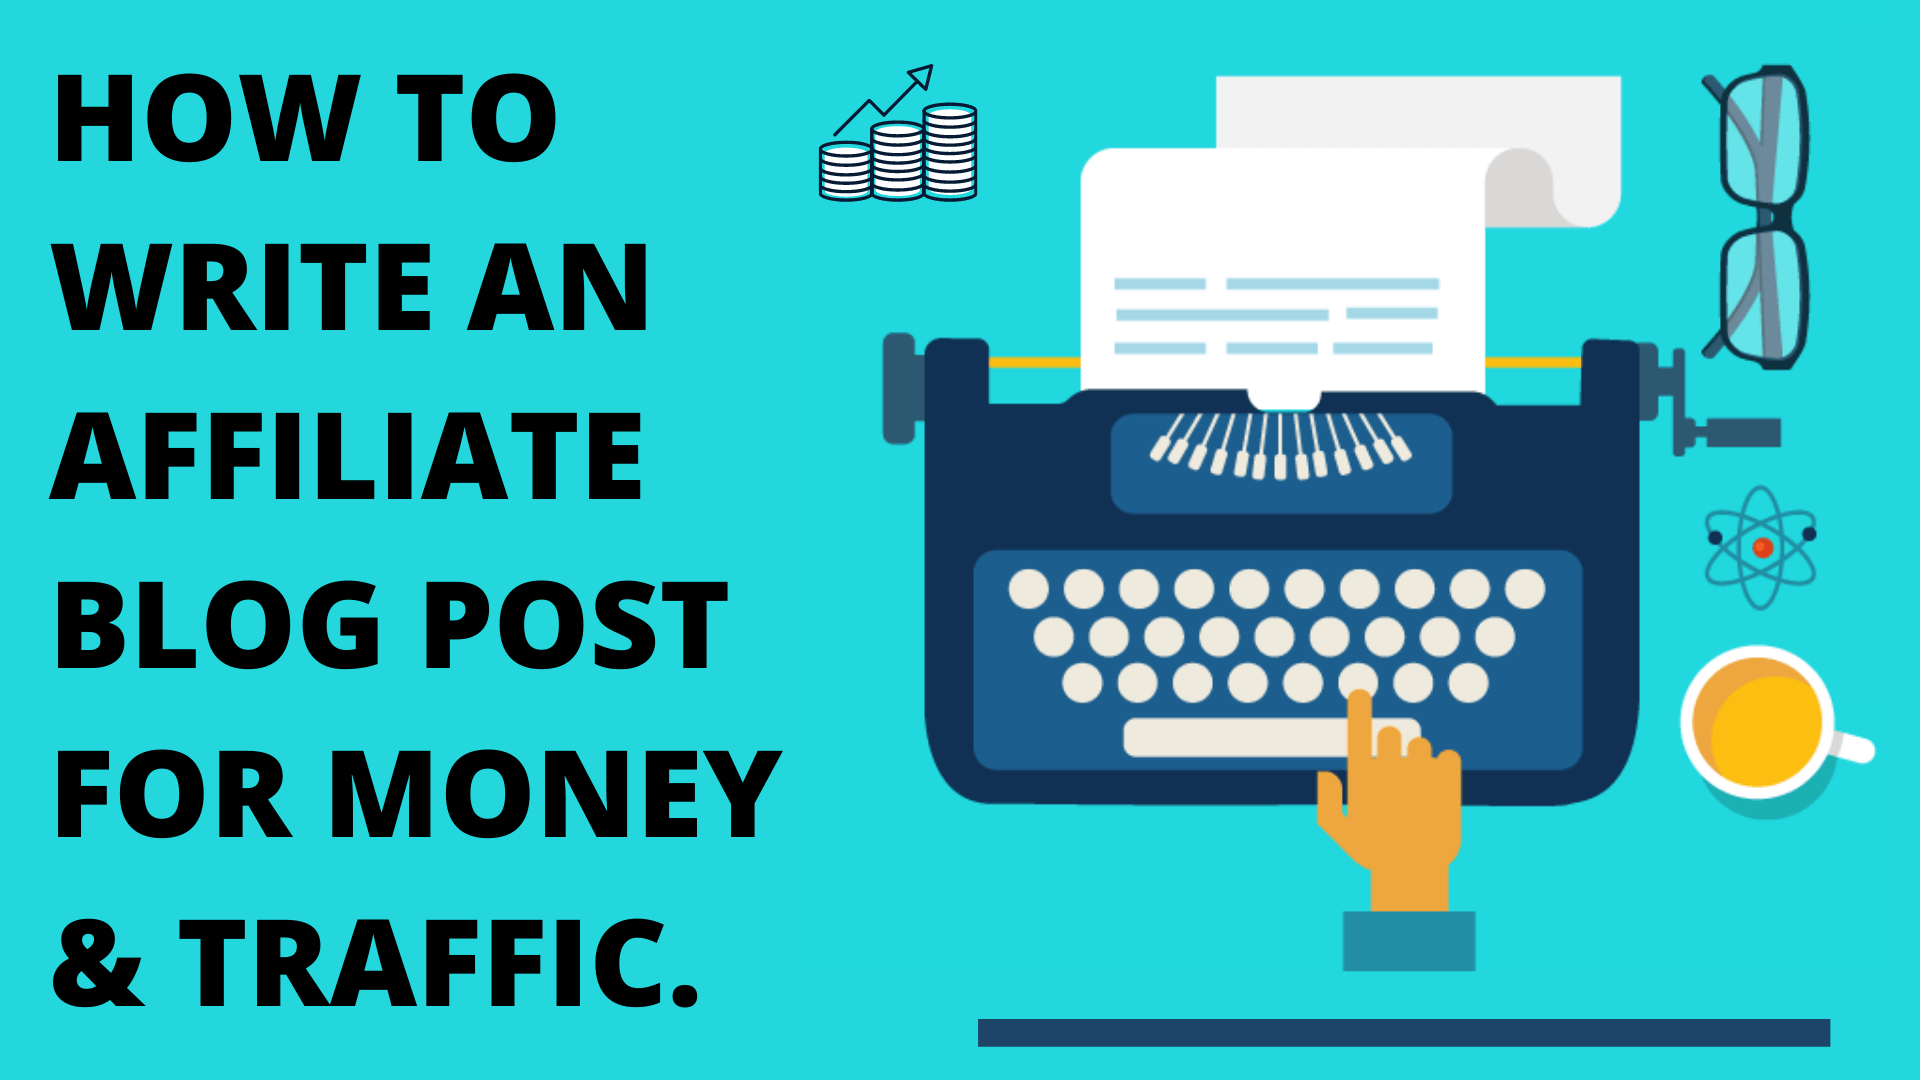 How to write an affiliate blog post